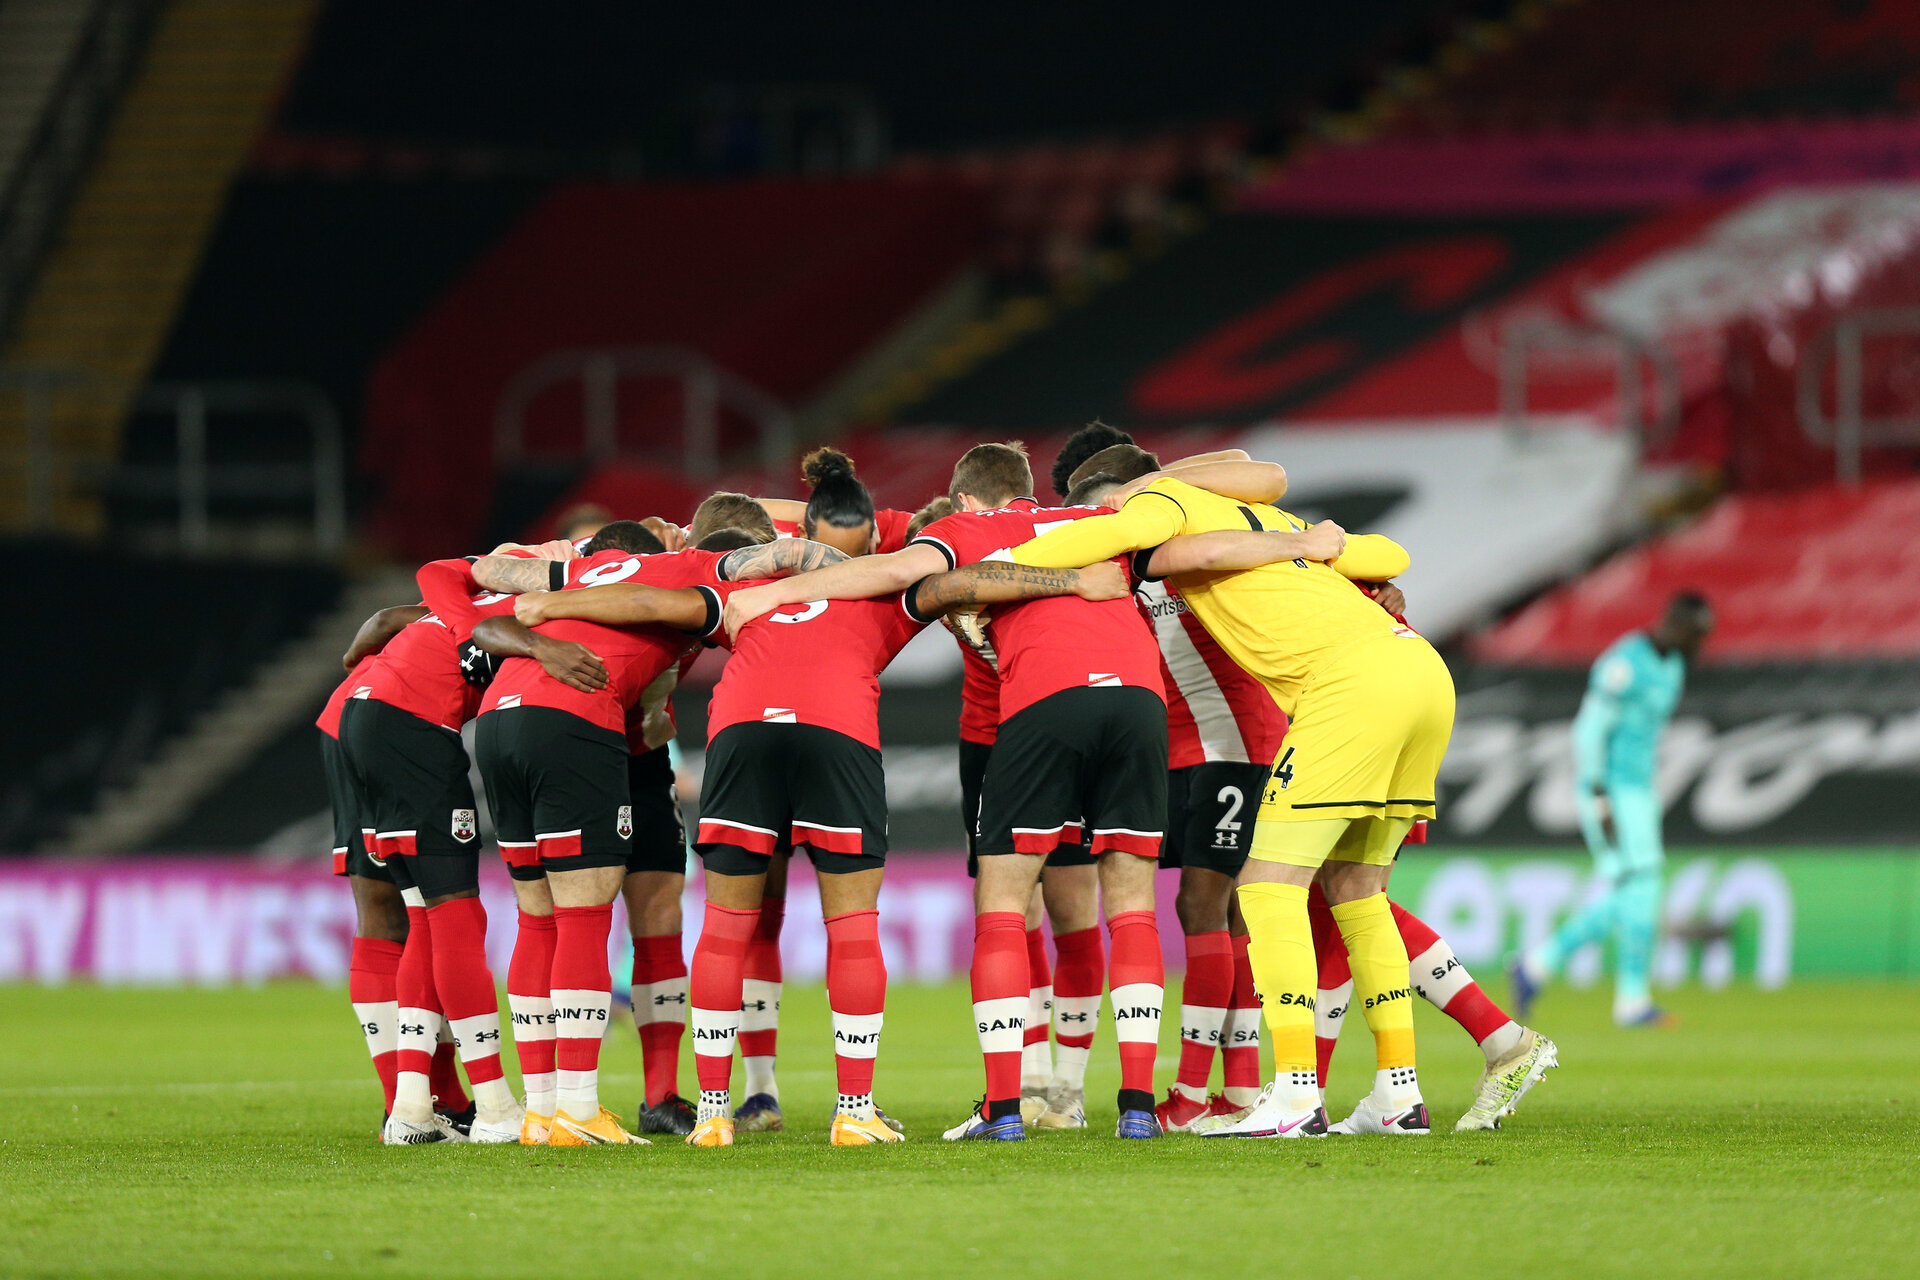 SOUTHAMPTON, ENGLAND - JANUARY 04: Saints huddle during the Premier League match between Southampton and Liverpool at St Mary's Stadium on January 2, 2021 in Southampton, United Kingdom. (Photo by Chris Moorhouse/Southampton FC via Getty Images)